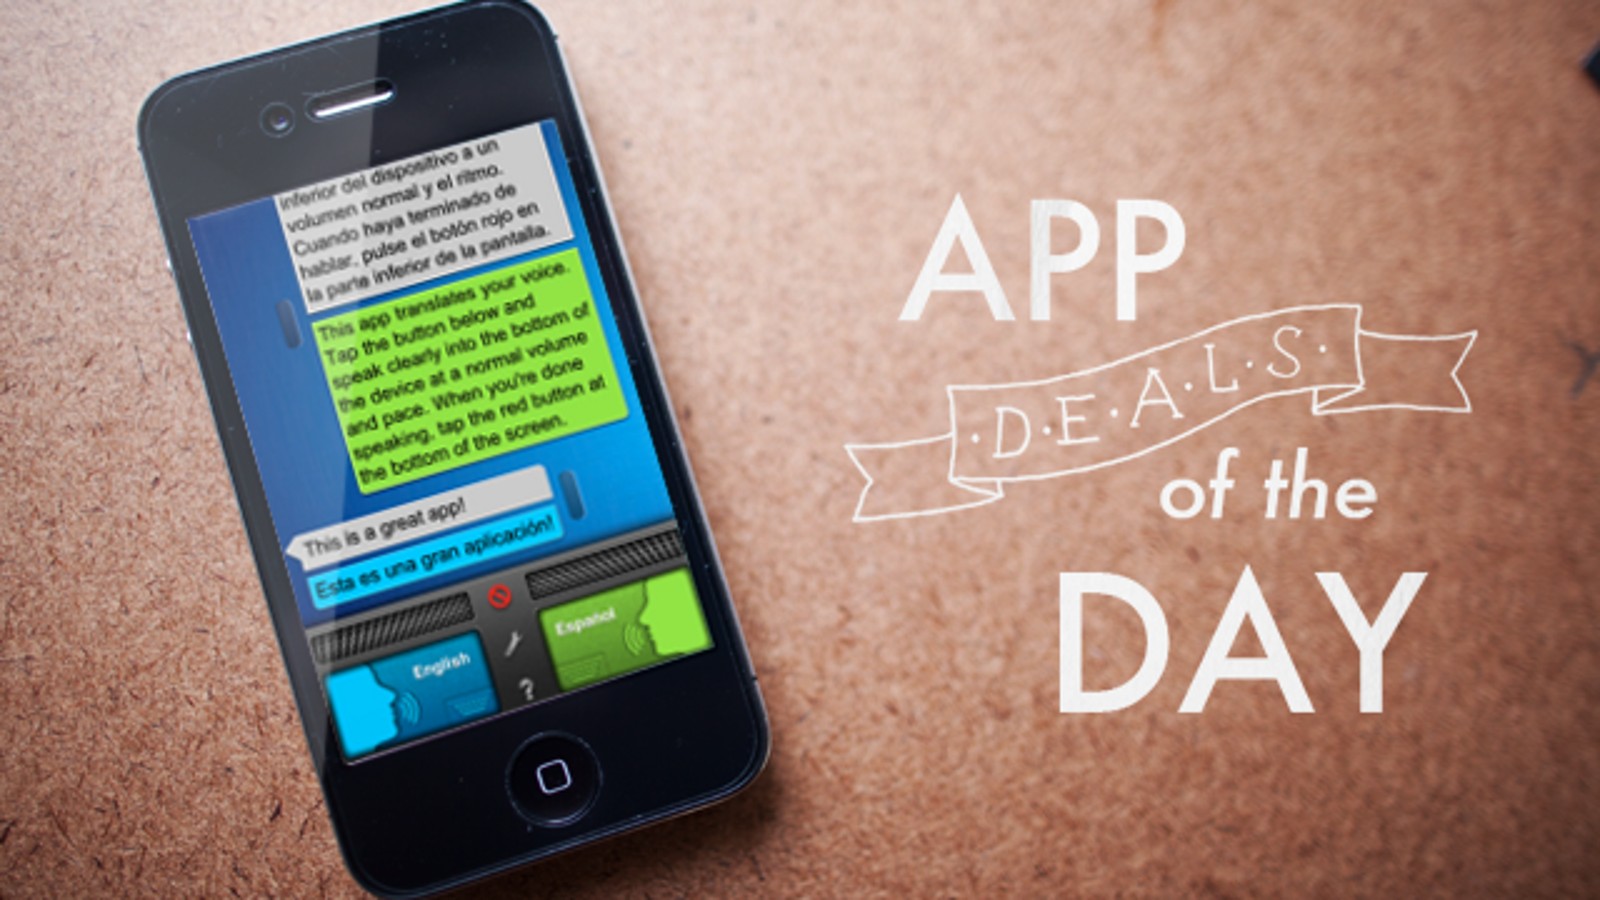 Daily App Deals: Get SayHi Translate for iOS for 99¢ in